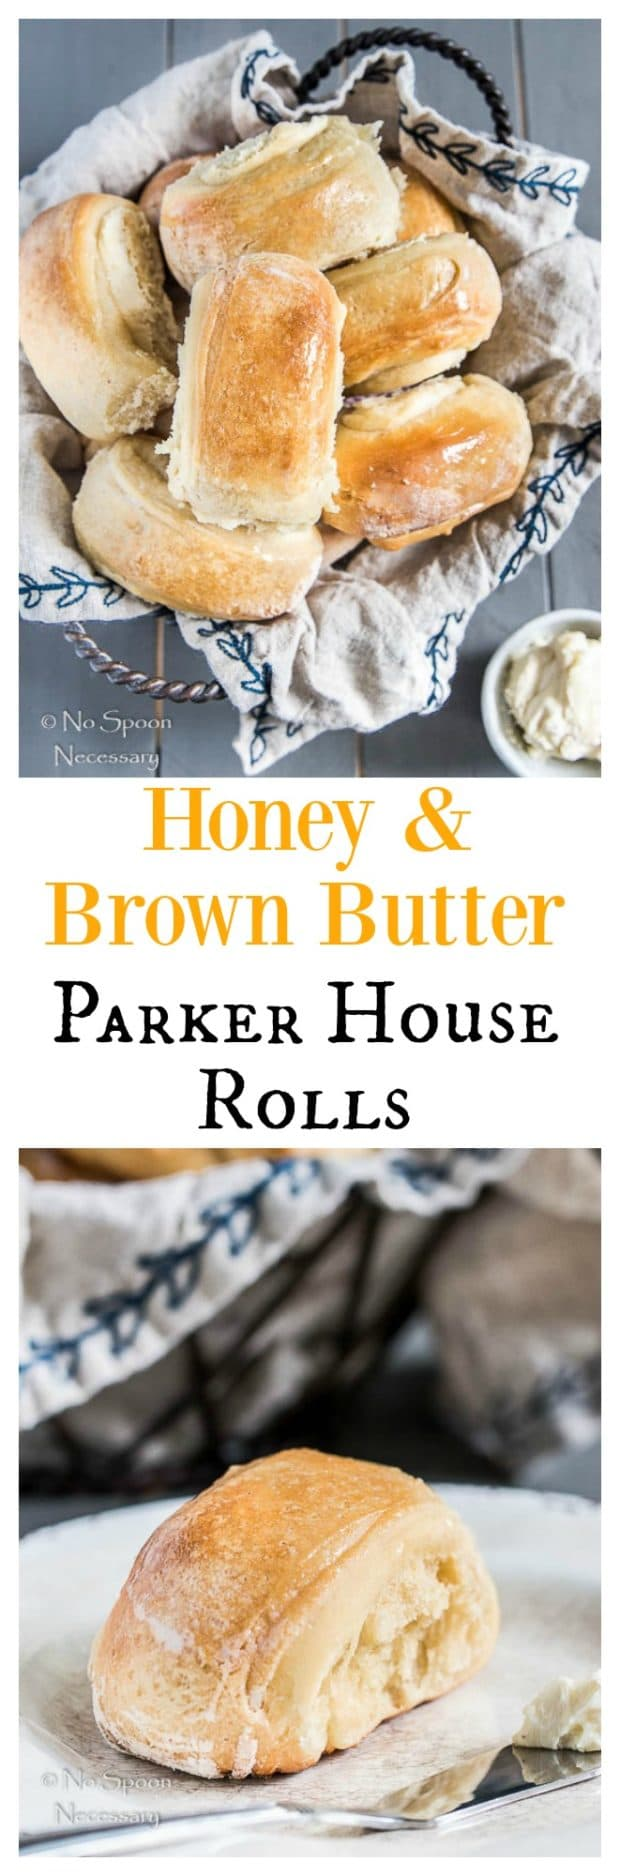 Honey Brown Butter Parker House Rolls